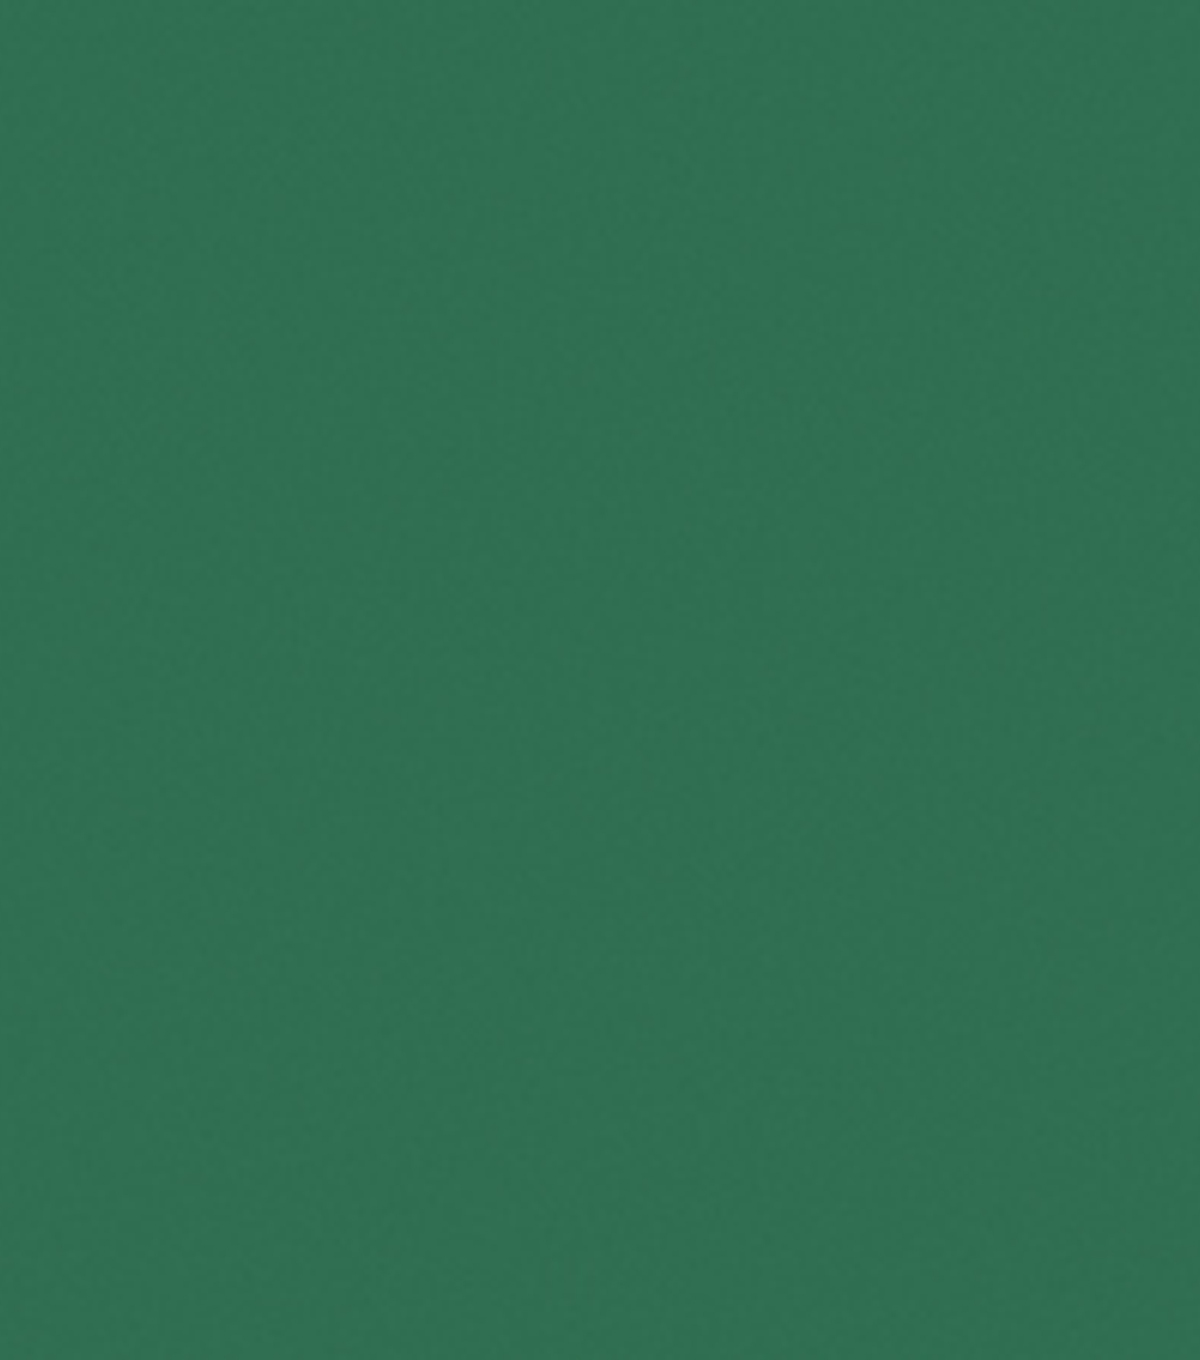 Jacquard 2.25 oz. Neopaque Acrylic Paint-1PK, Green